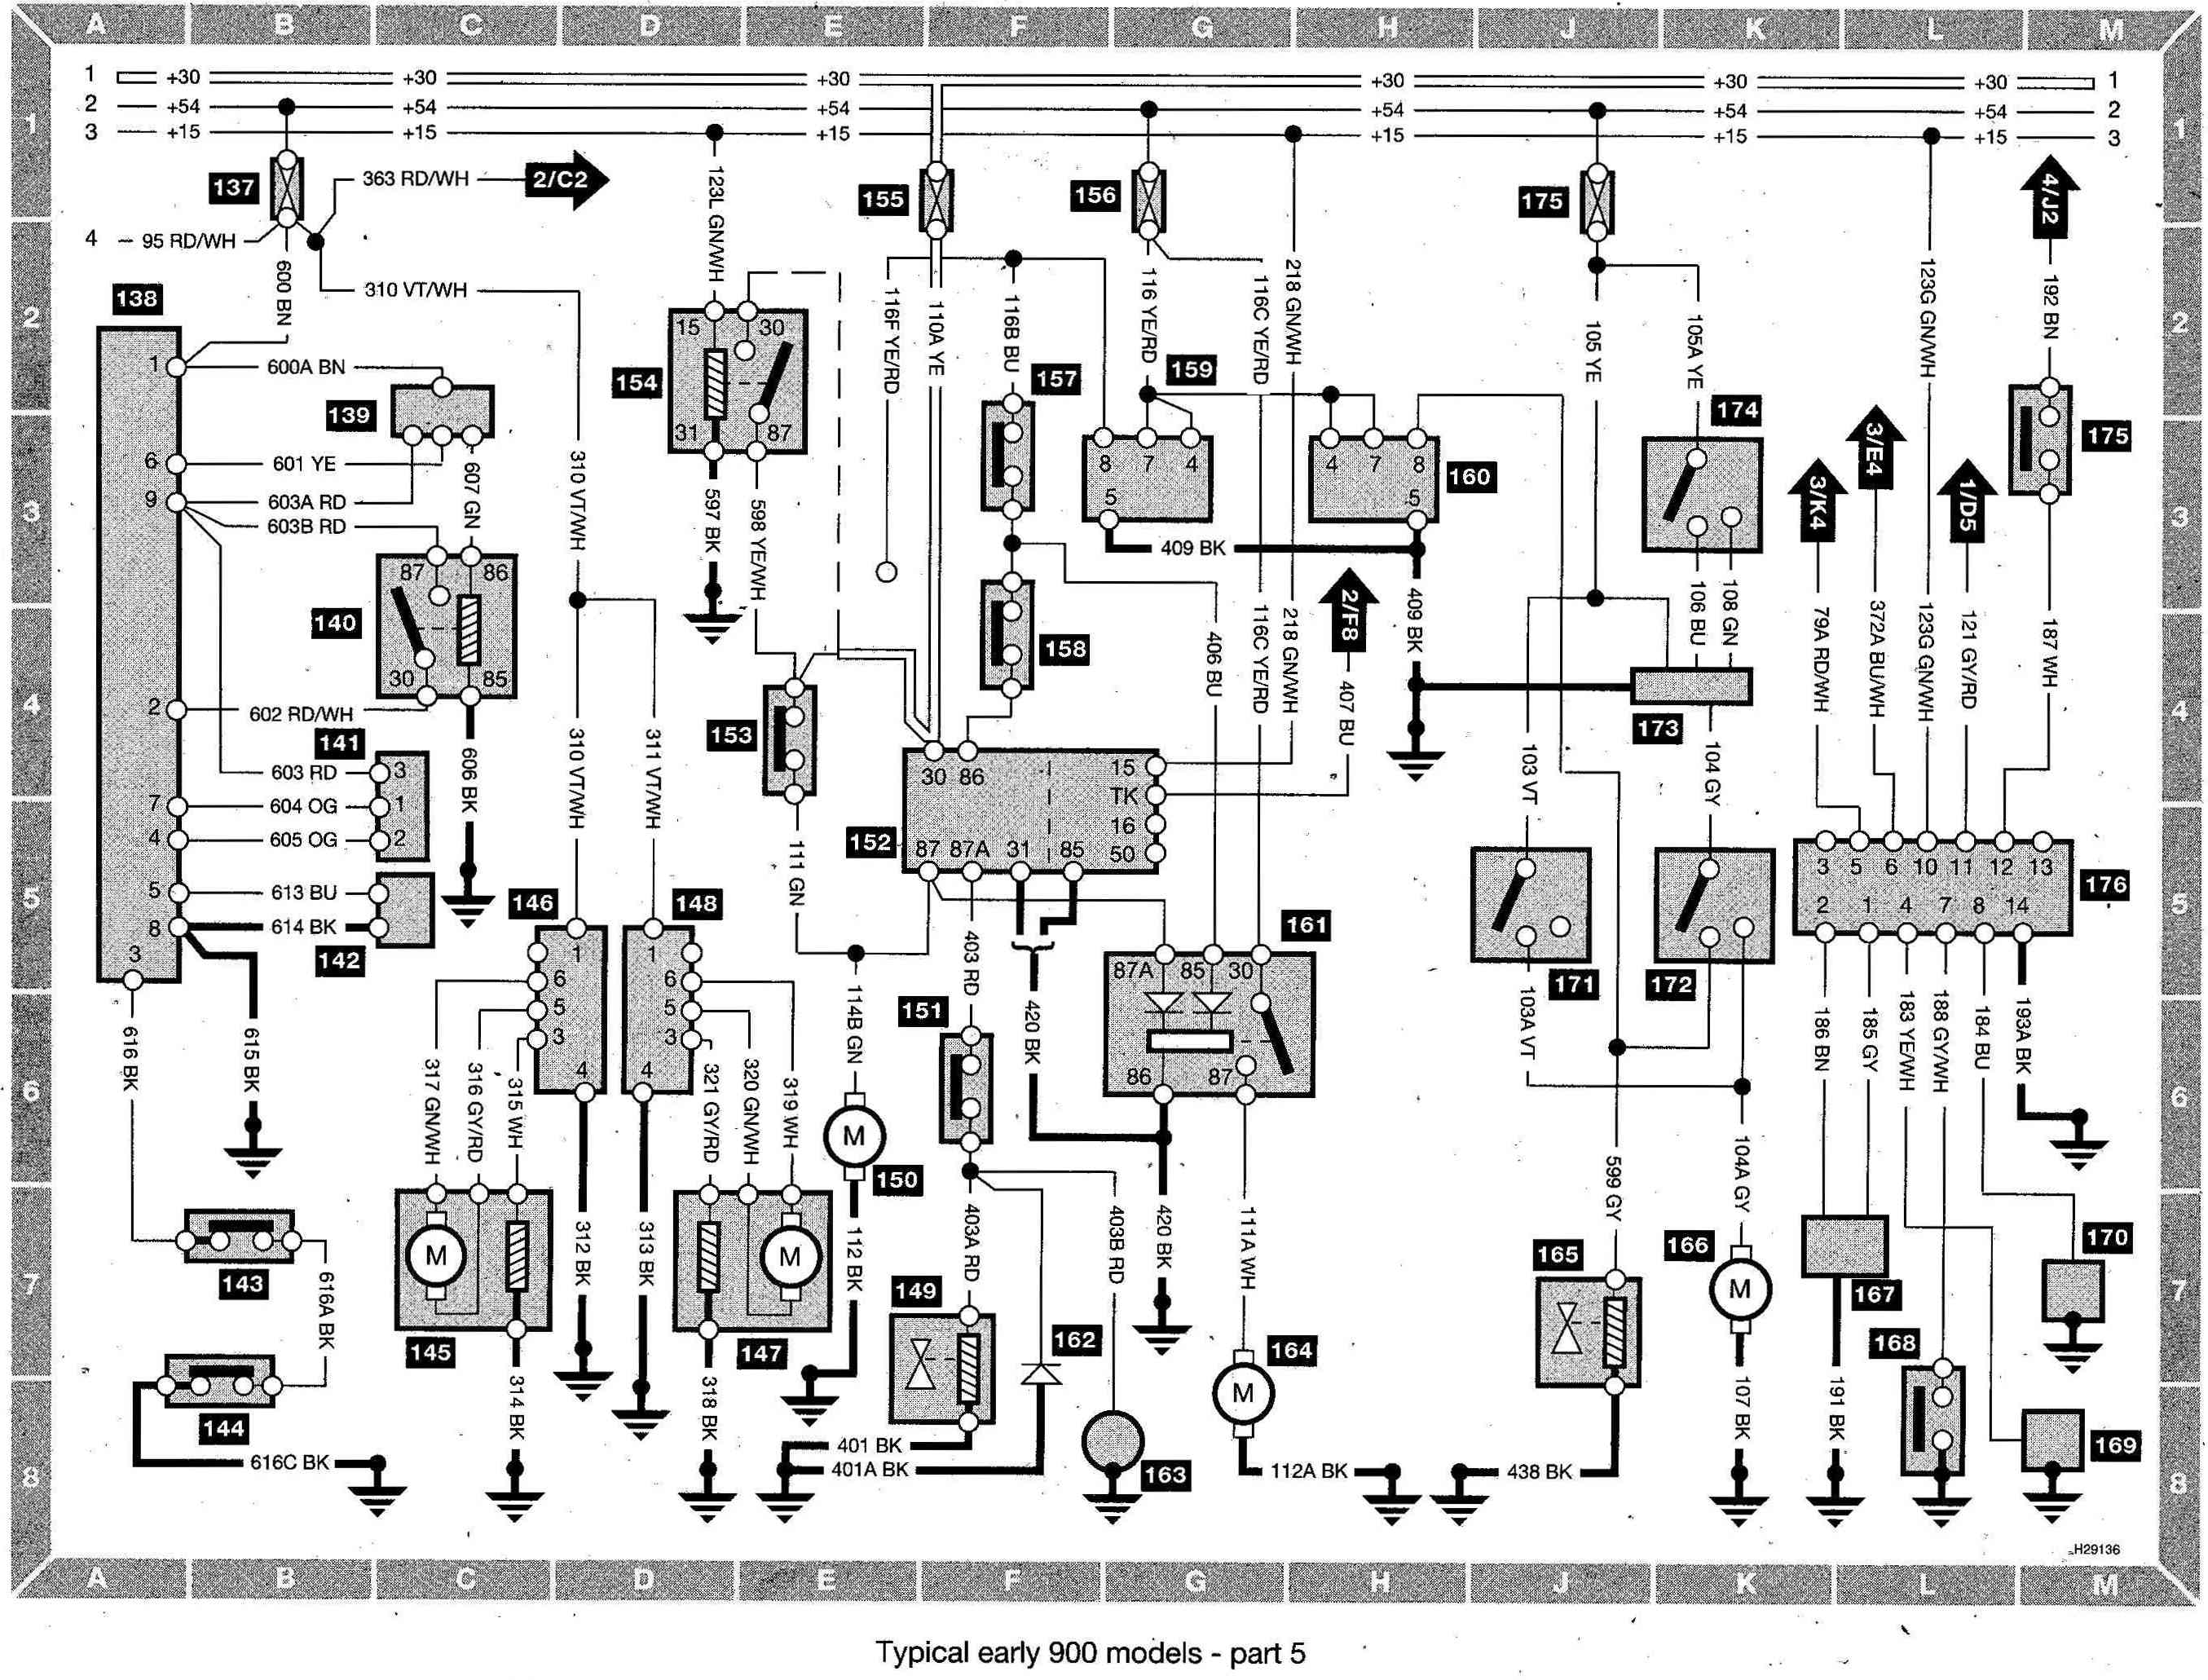 DIAGRAM] 2005 Saab 9 3 Convertible Wiring Diagram FULL Version HD Quality Wiring  Diagram - GETIRAQJOBS.SCARPEDACALCIONIKESCONTATE.ITgetiraqjobs.scarpedacalcionikescontate.it